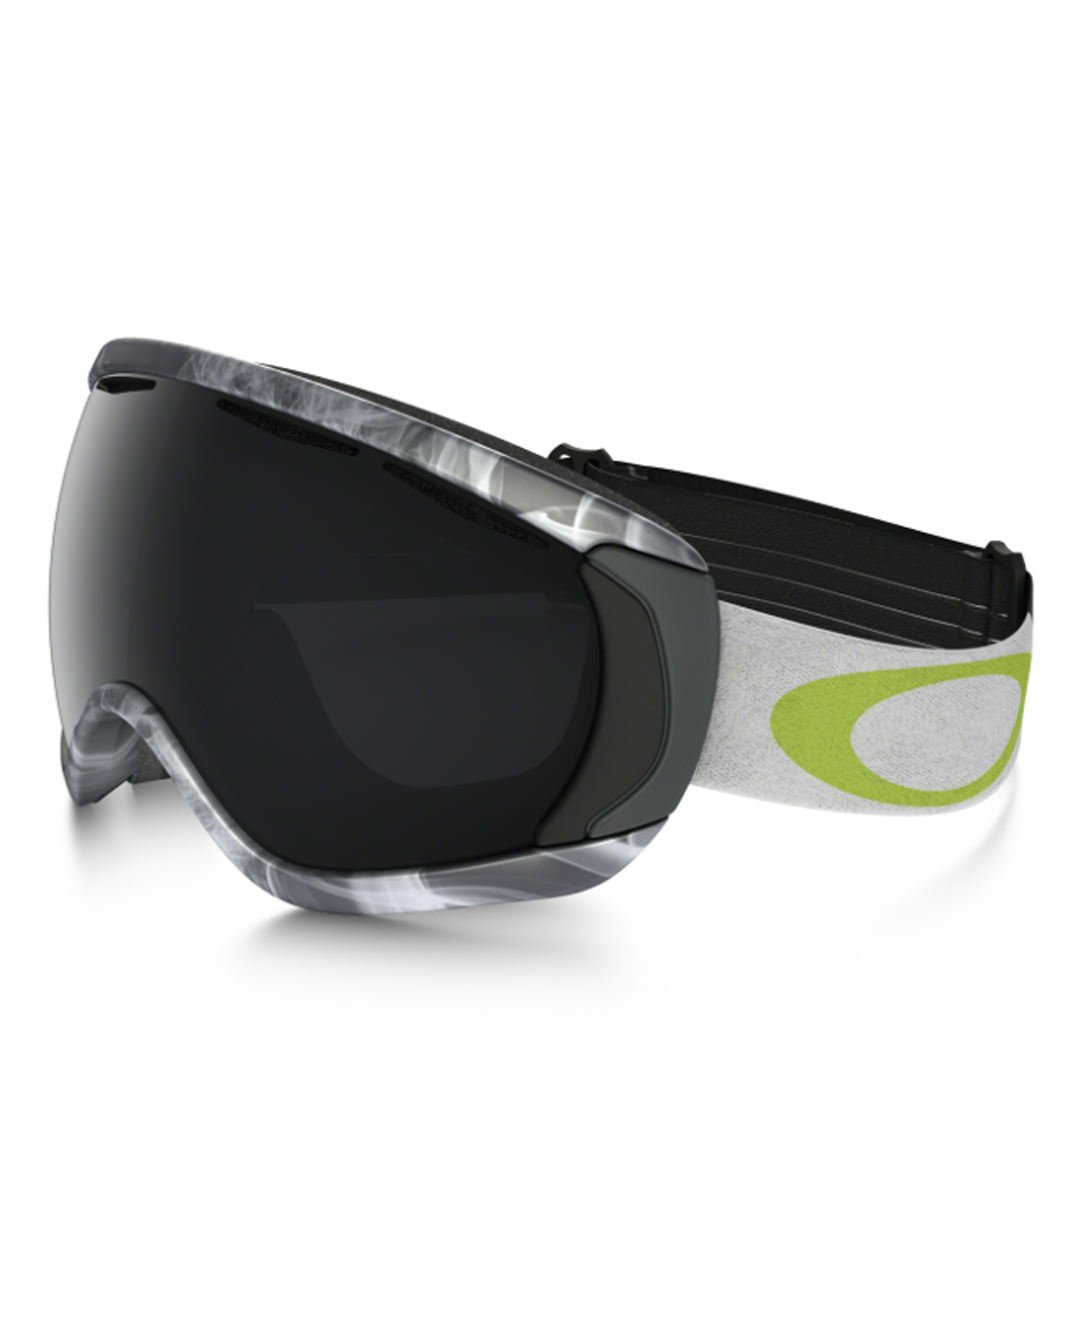 OAKLEY MASCHERA SNOWBOARD CANOPY BURNED OUT - LM BOARD STORE